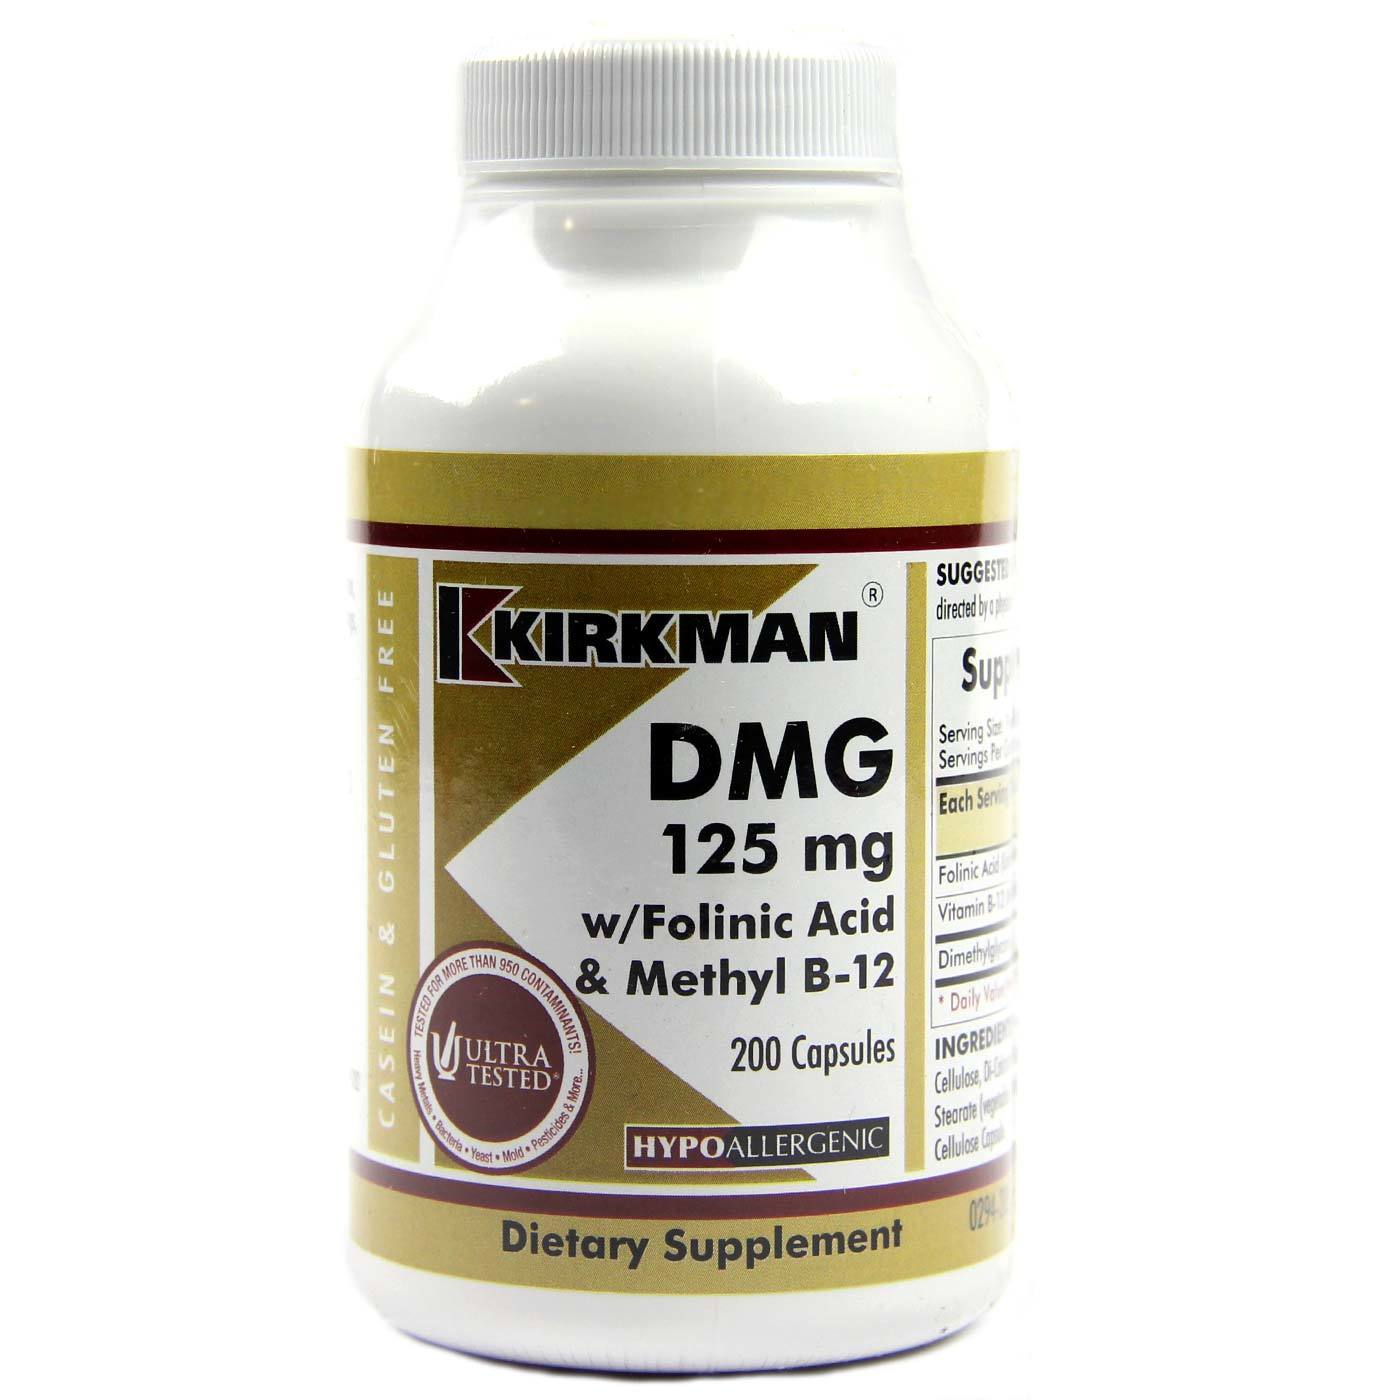 Kirkman Labs DMG (Dimethylglycine) with Folinic Acid and Methyl B12  Hypoallergenic - 200 Caps